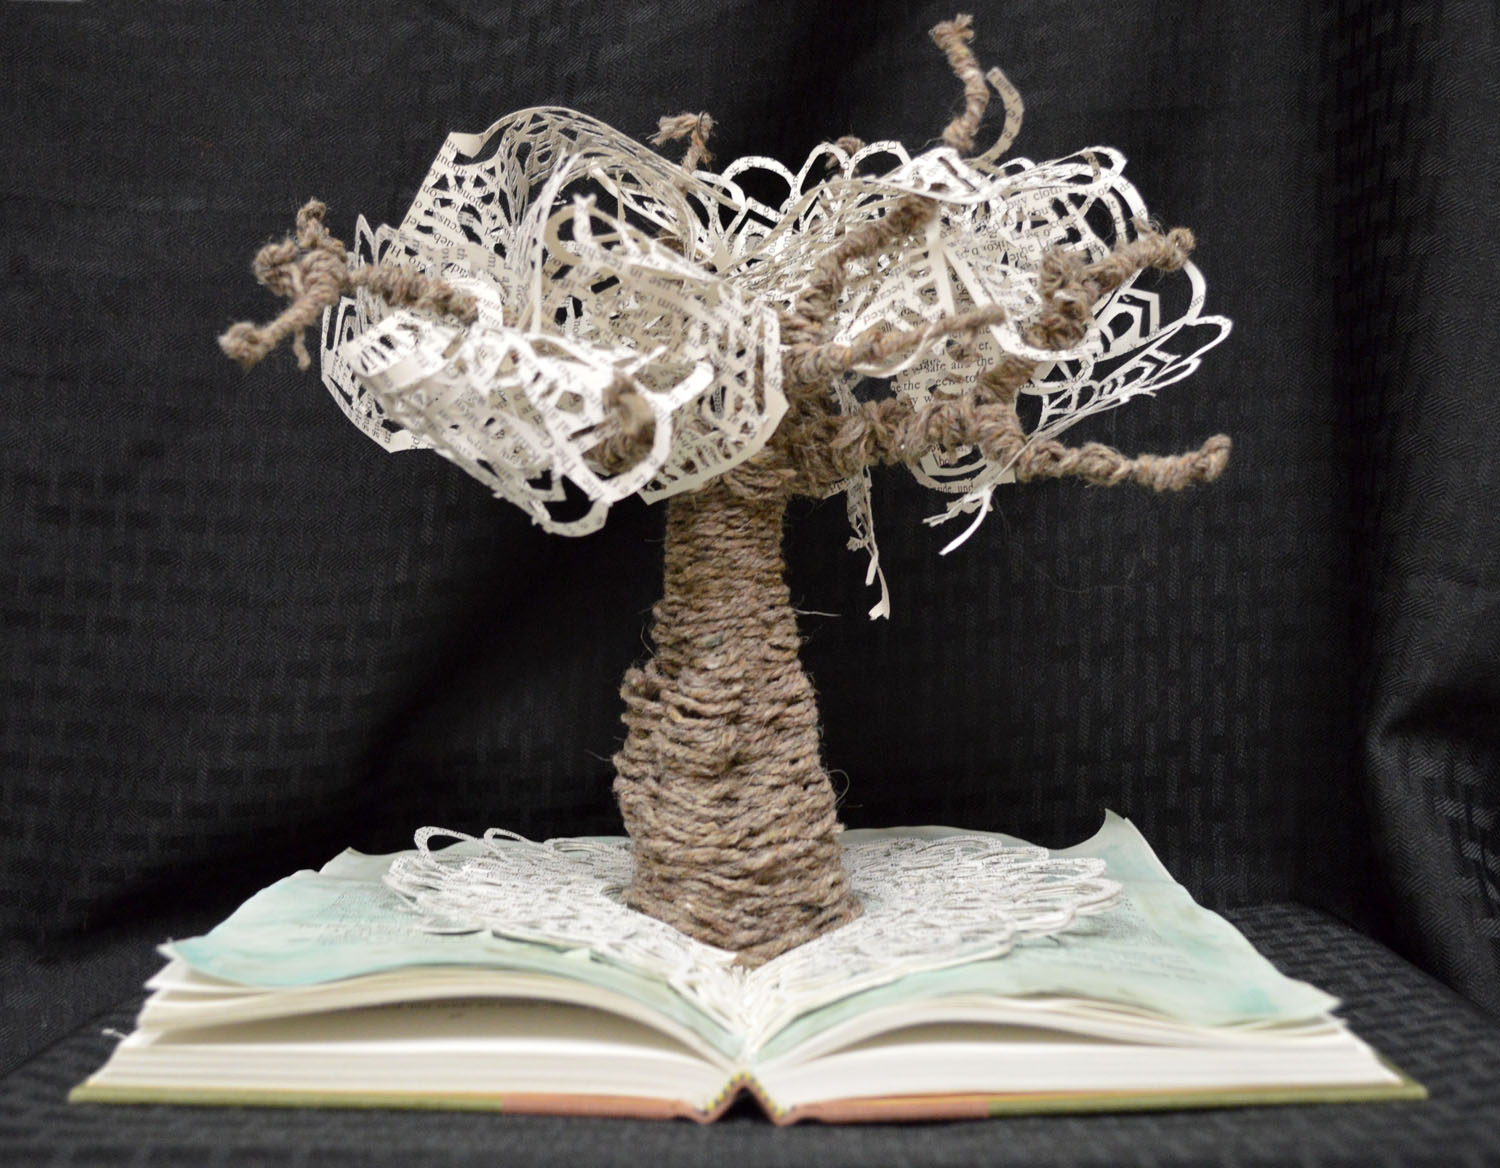 A small tan and ivory tree made from yarn and lace appears to be growing out of an open book, and is